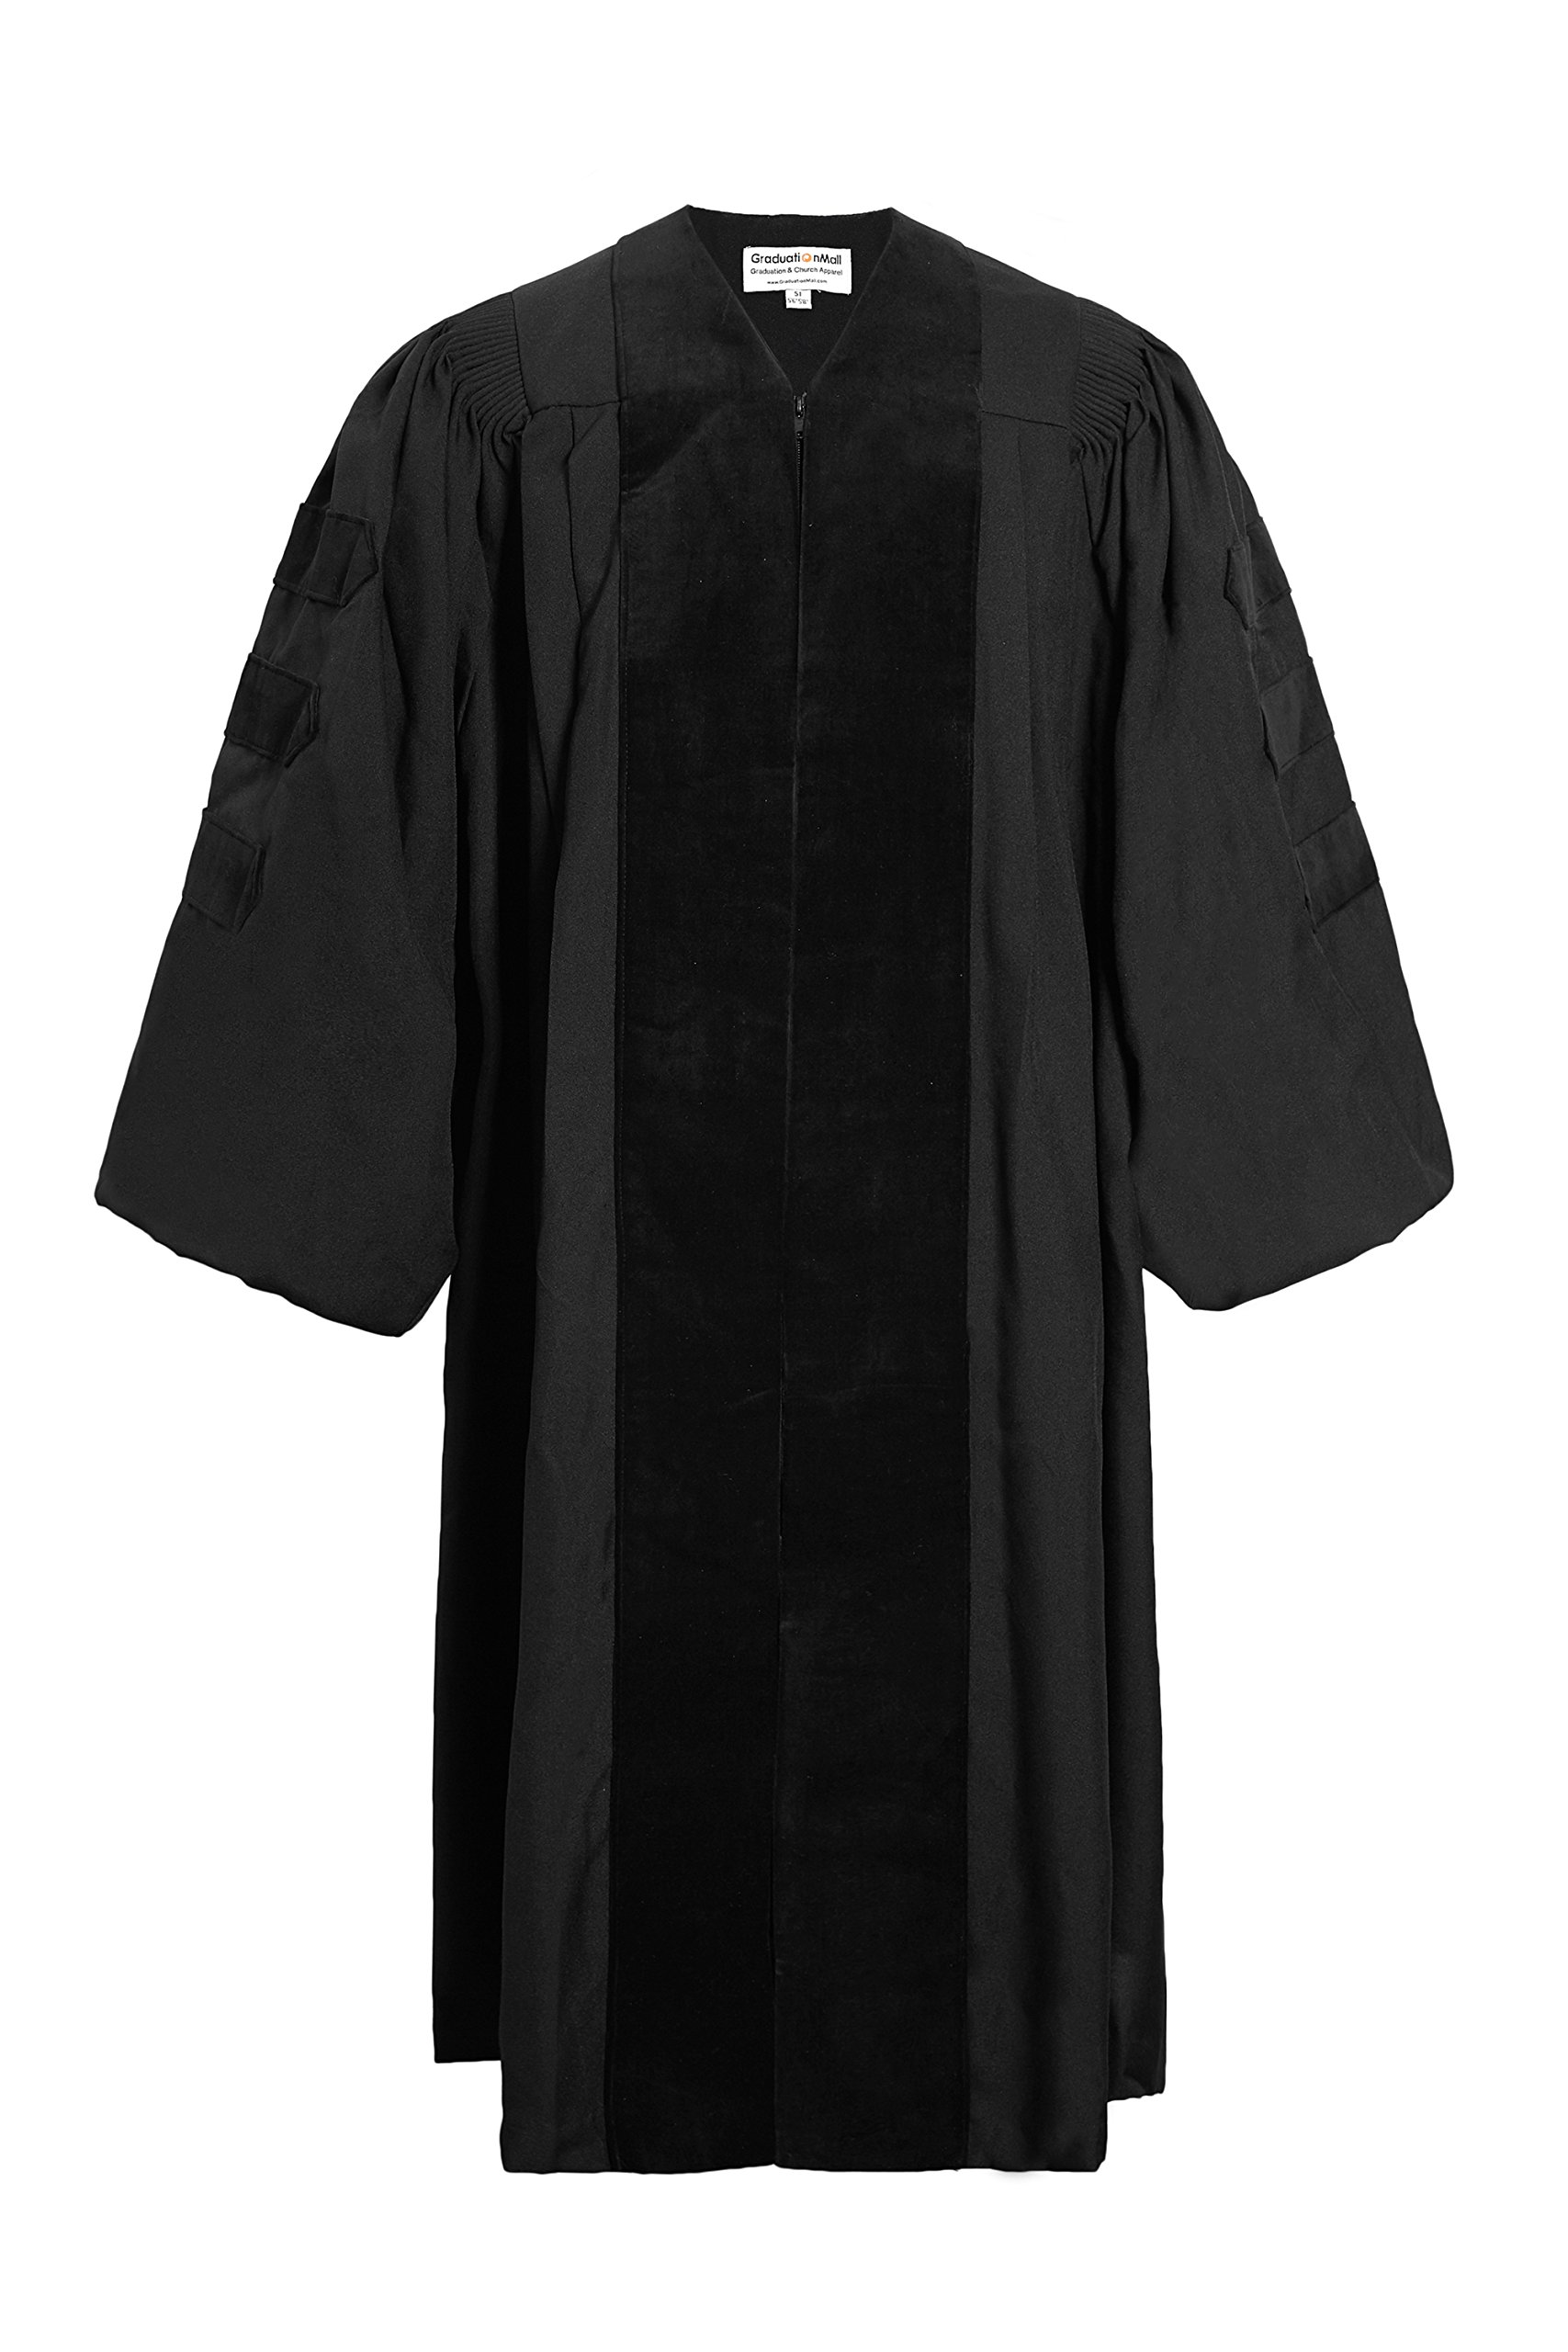 GraduationMall Deluxe Doctoral Graduation Gown Black 48(5'3''-5'5'')